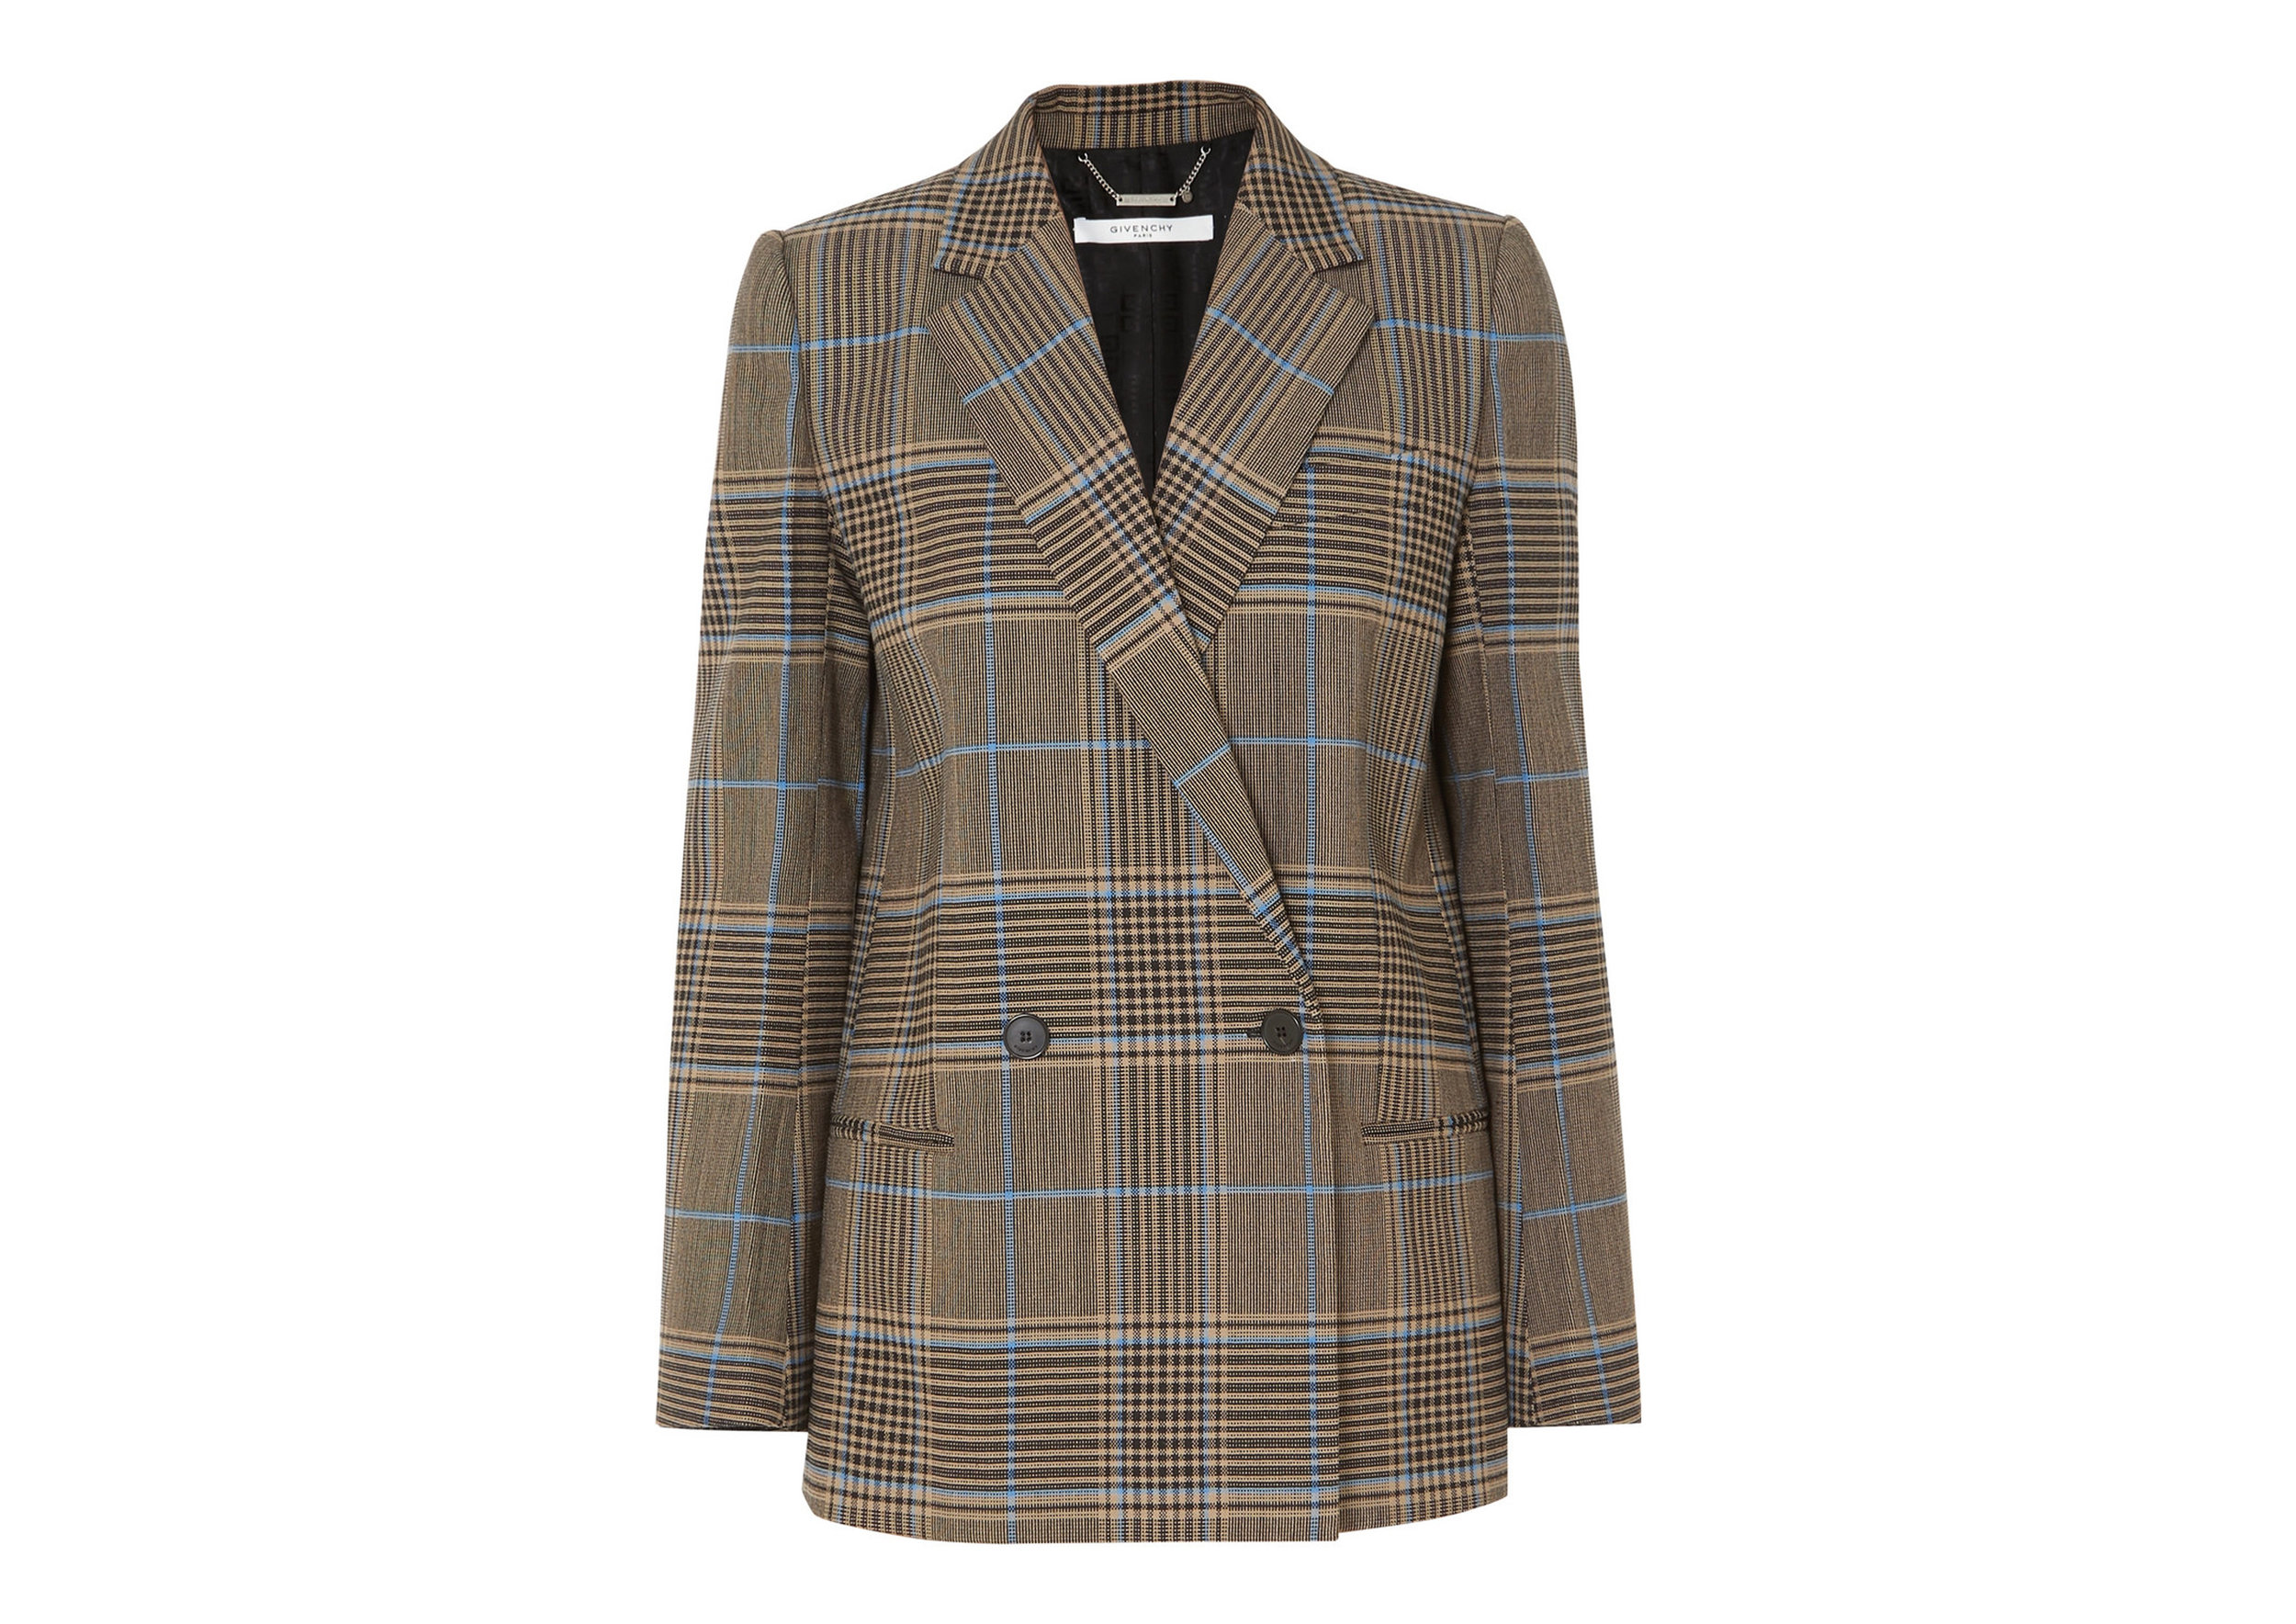 Givenchy - Double-breasted Checked Wool-blend Blazer, SGD 3,959